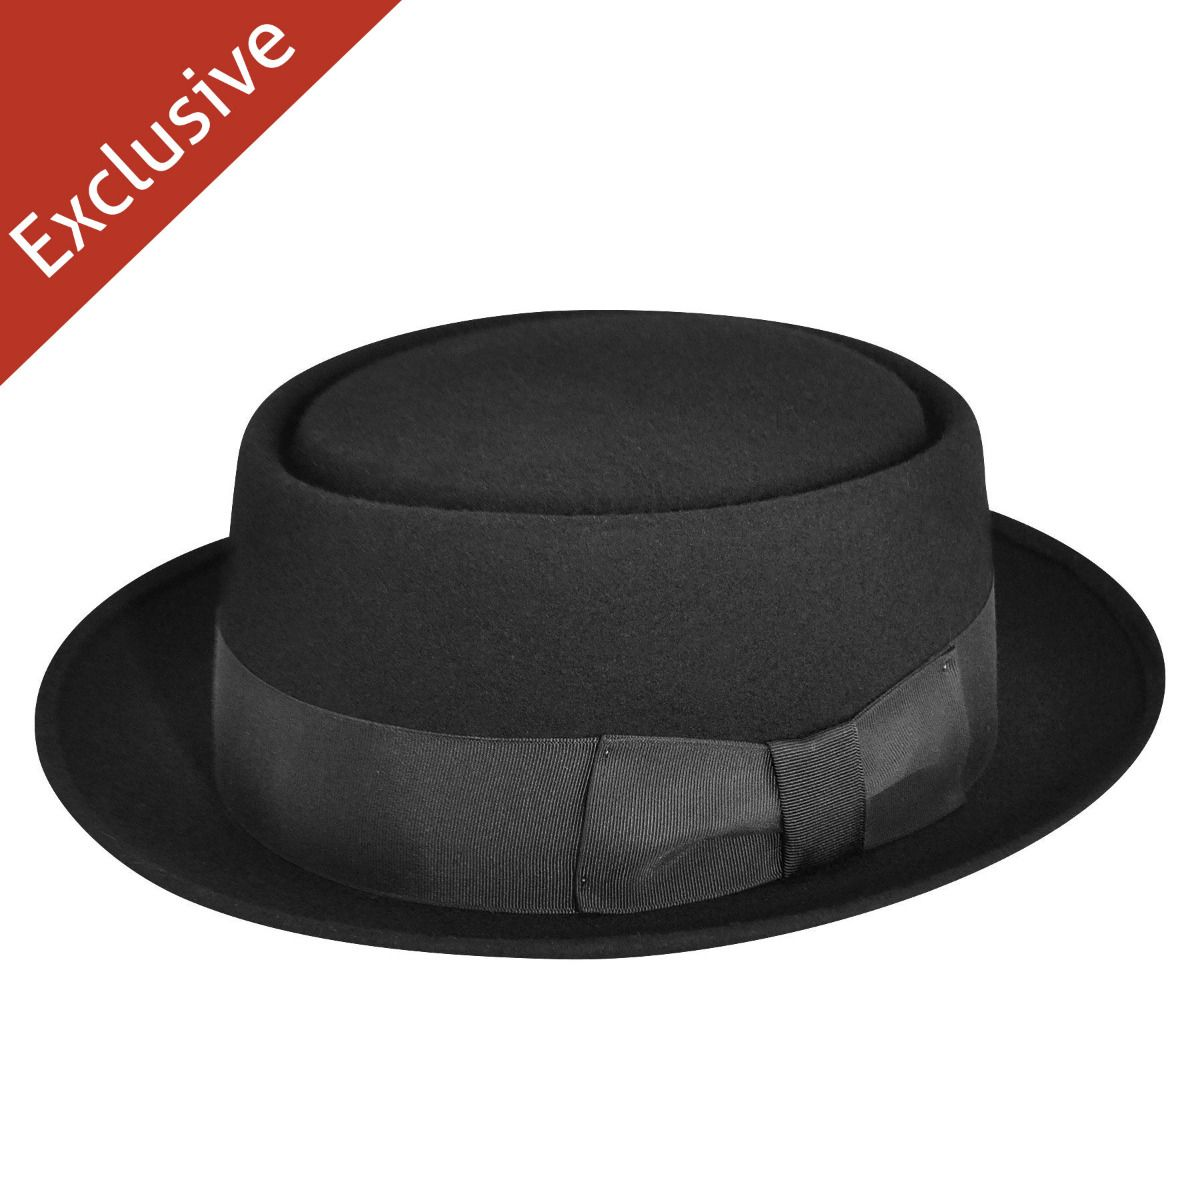 820ad5a09ef1b 1940s Men's Hats: Vintage Styles, History, Buying Guide | U....AUUU...